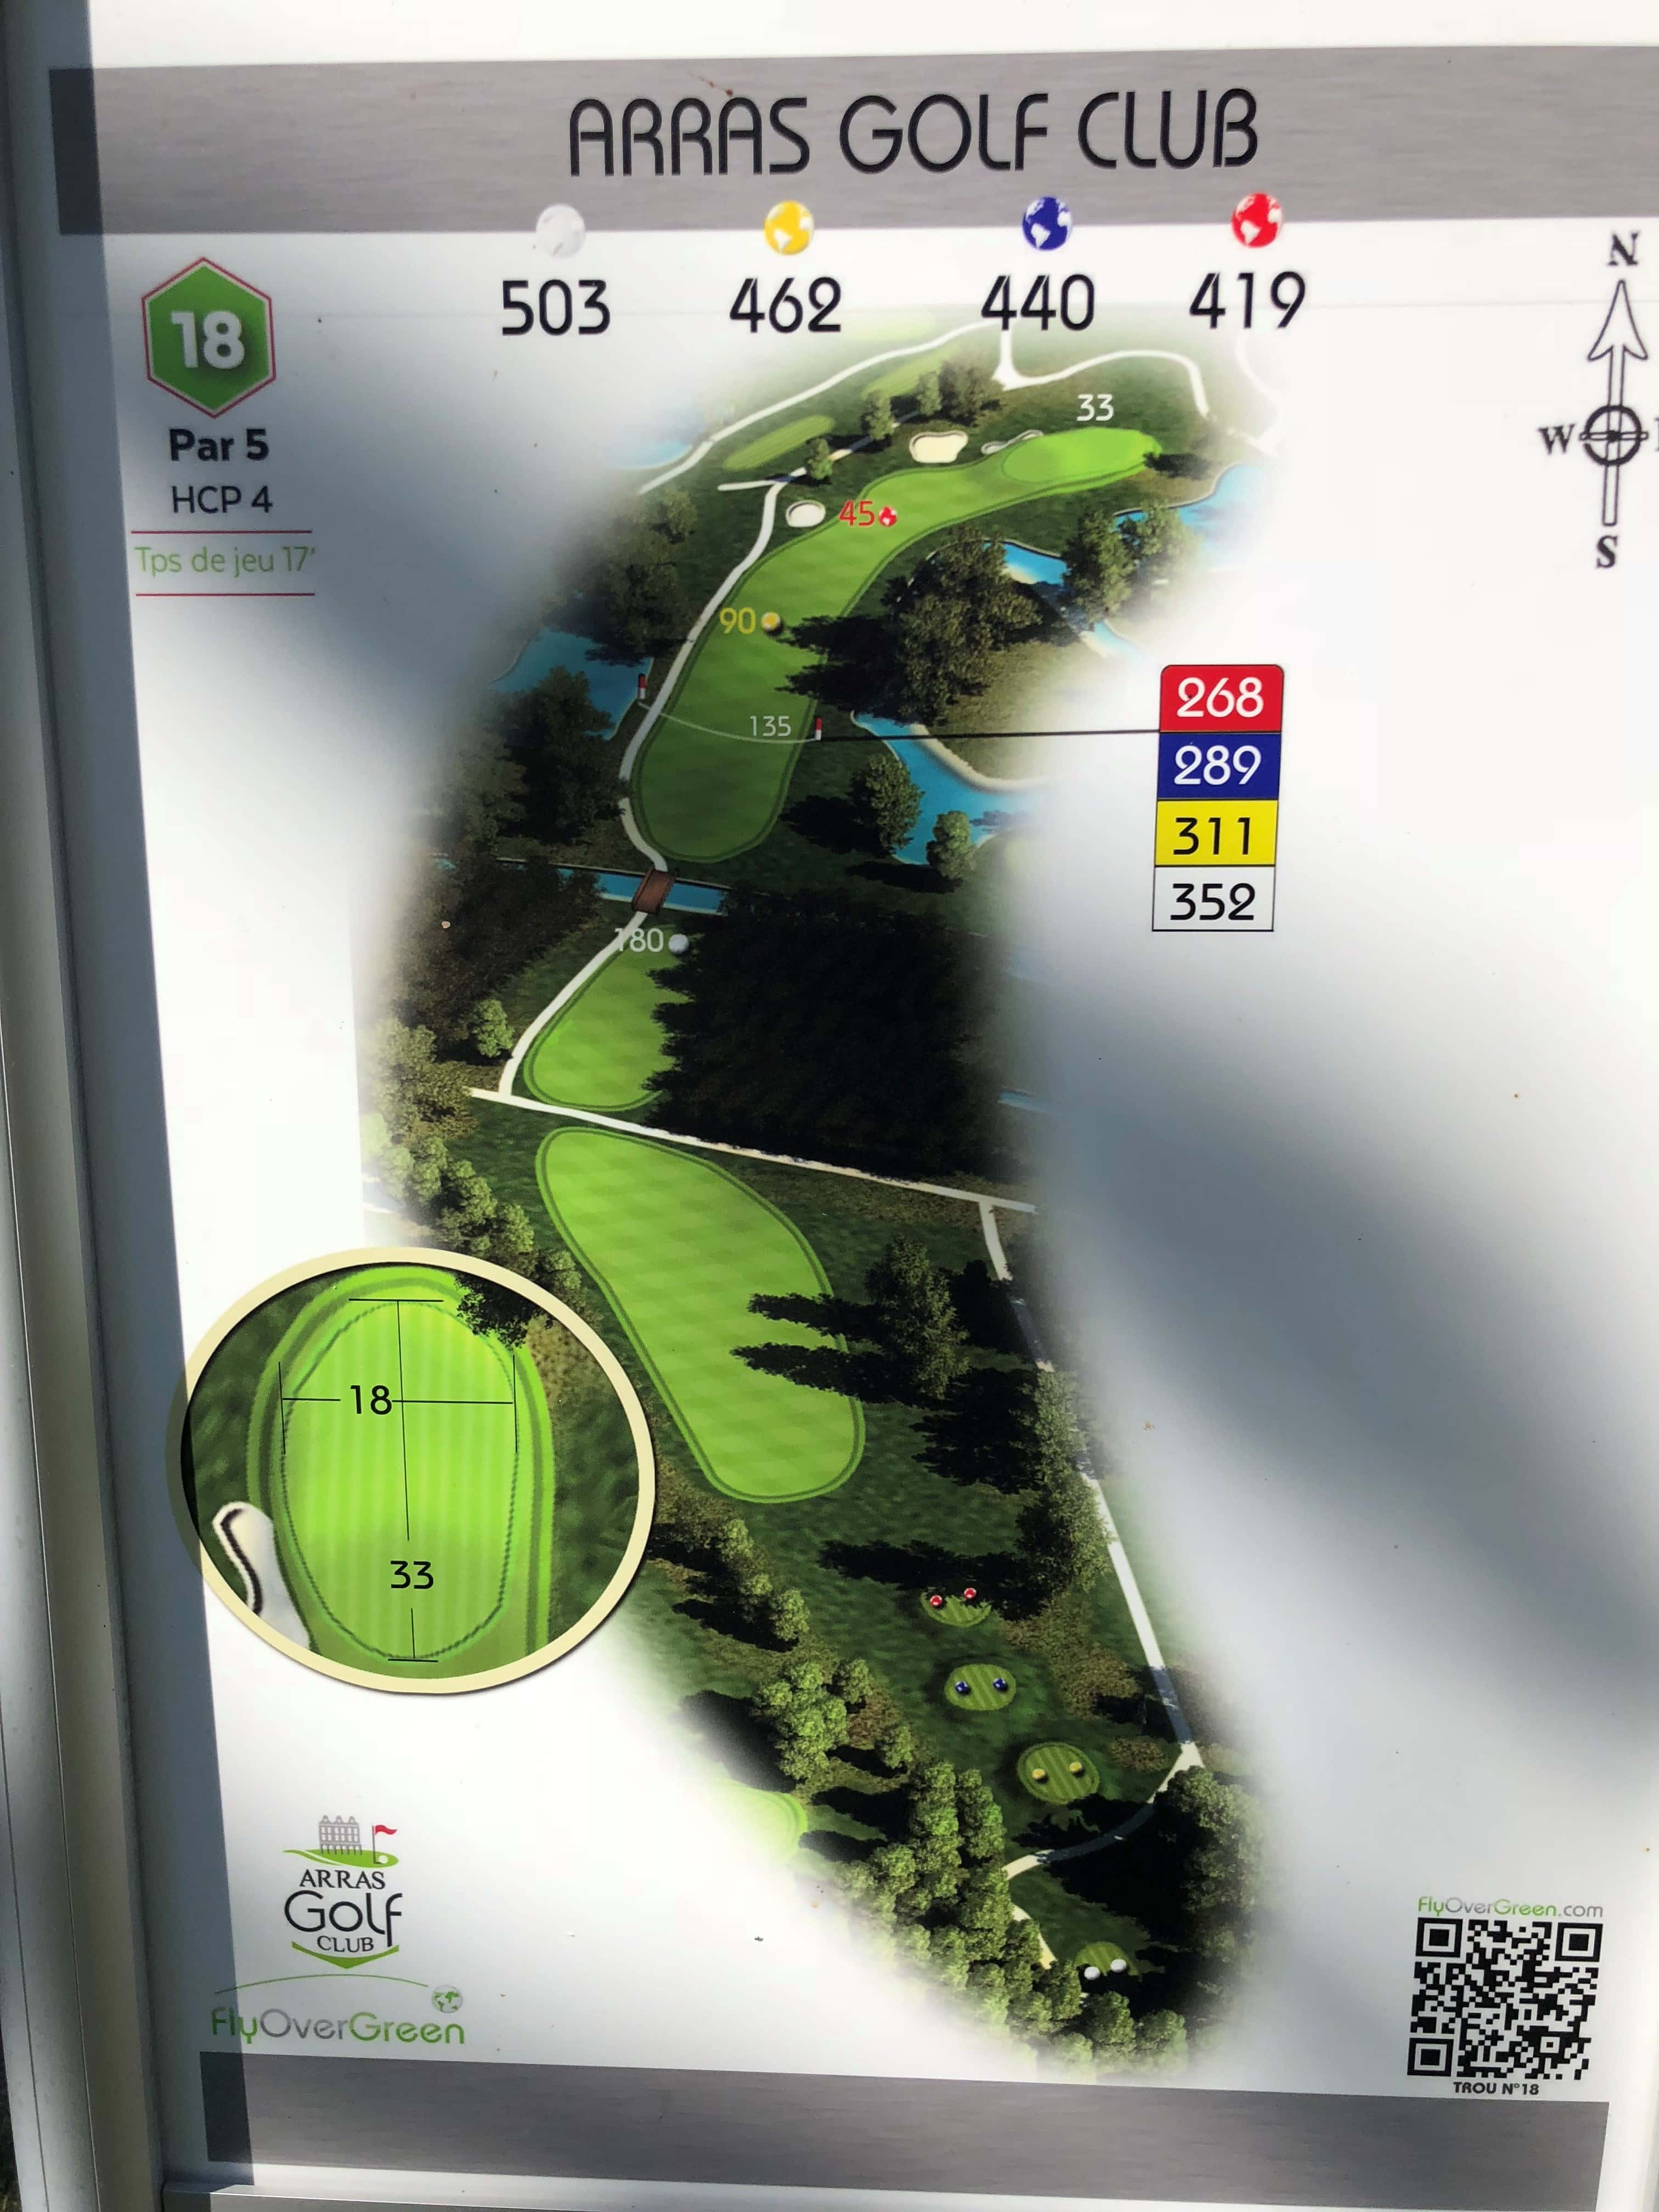 Tee 18, Arras Golf Club, Arras Golf Resort, Parcours La Vallée, Distance 503m, Distance 462m, Distance 440m, Distance 419m, Par 5